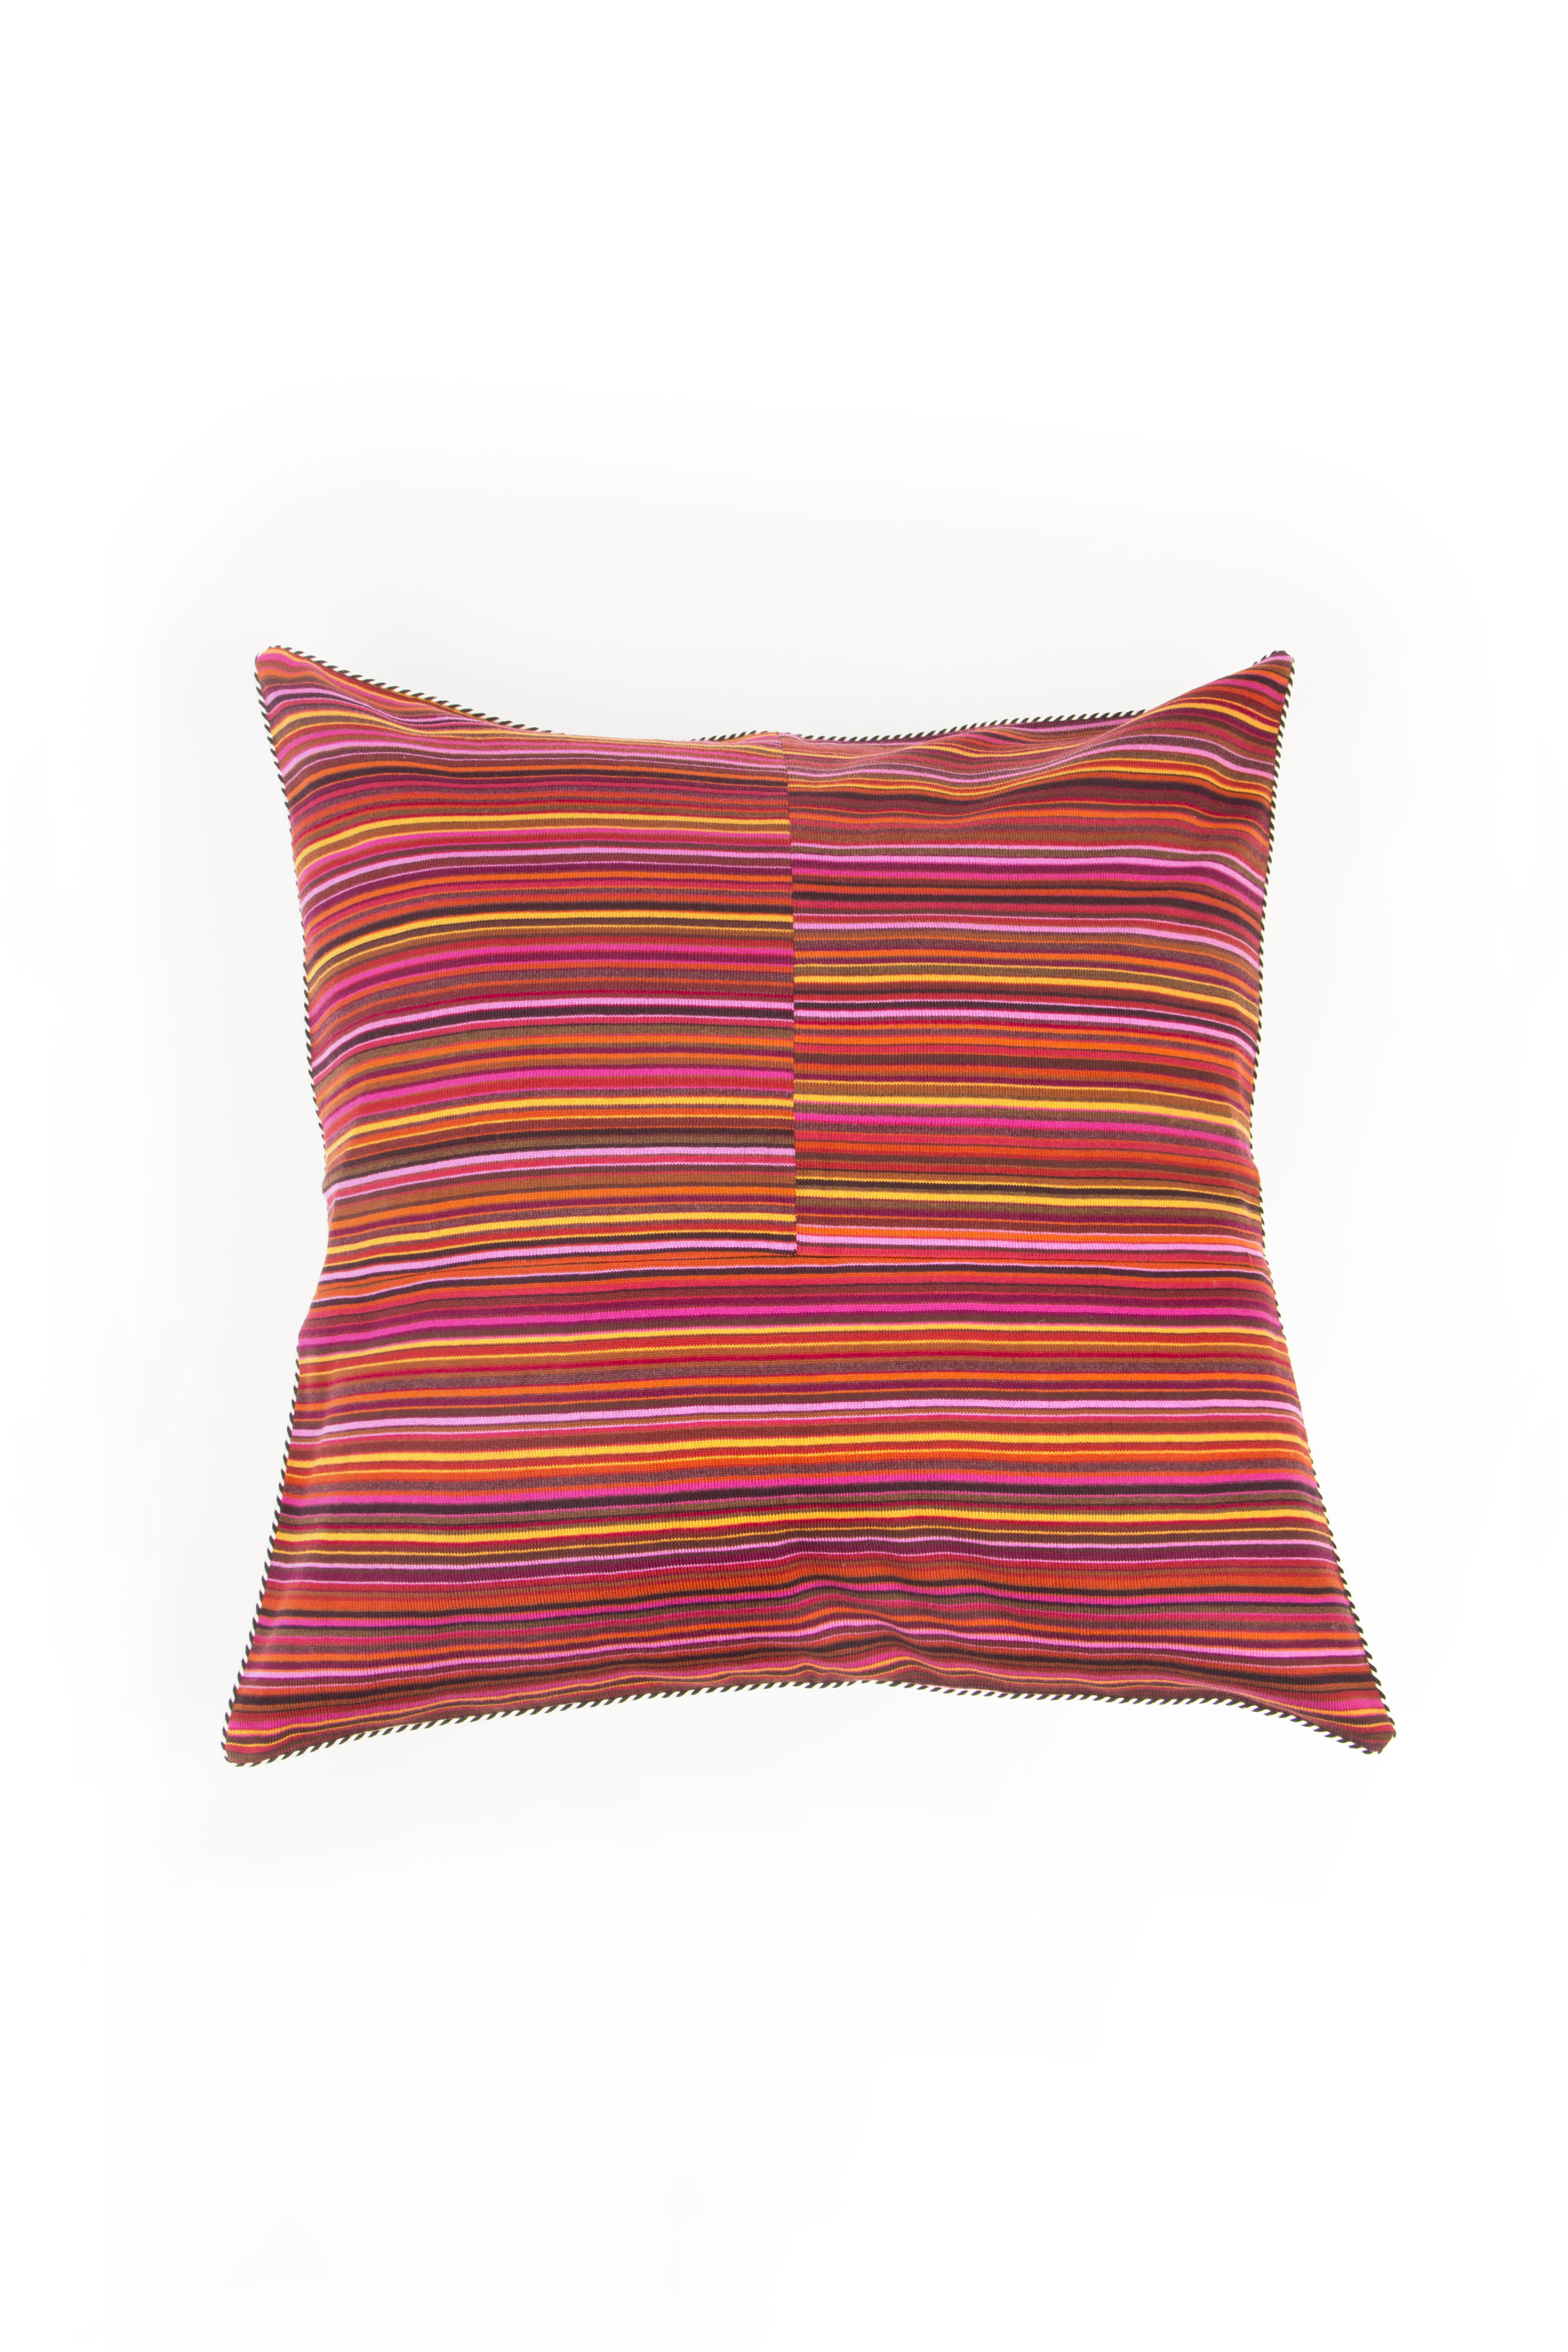 Knitted cushions with stripes Bacci